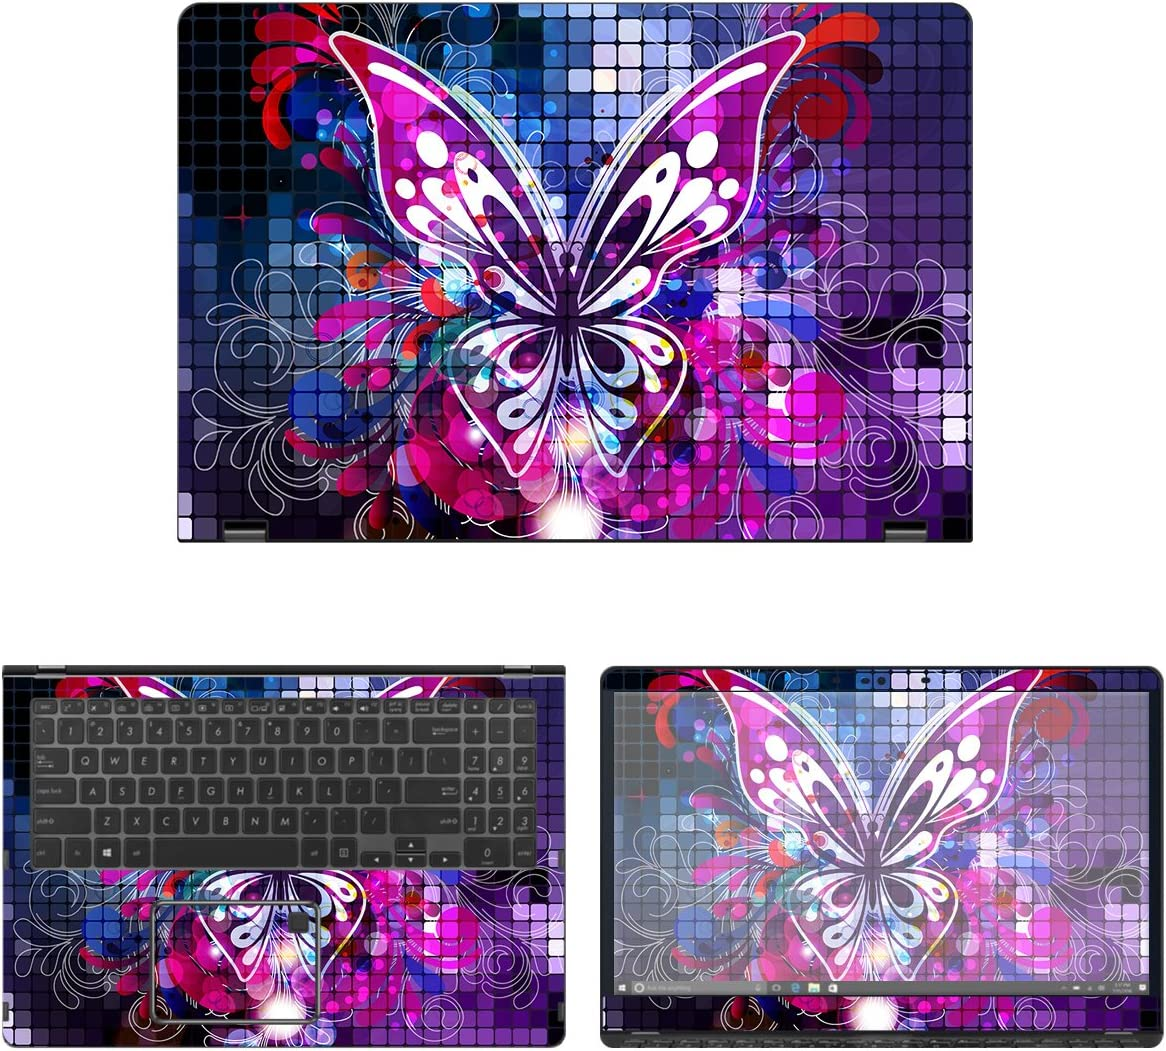 decalrus - Protective Decal Butterfly Asus Sticker Ranking TOP9 for Max 77% OFF Skin Q525